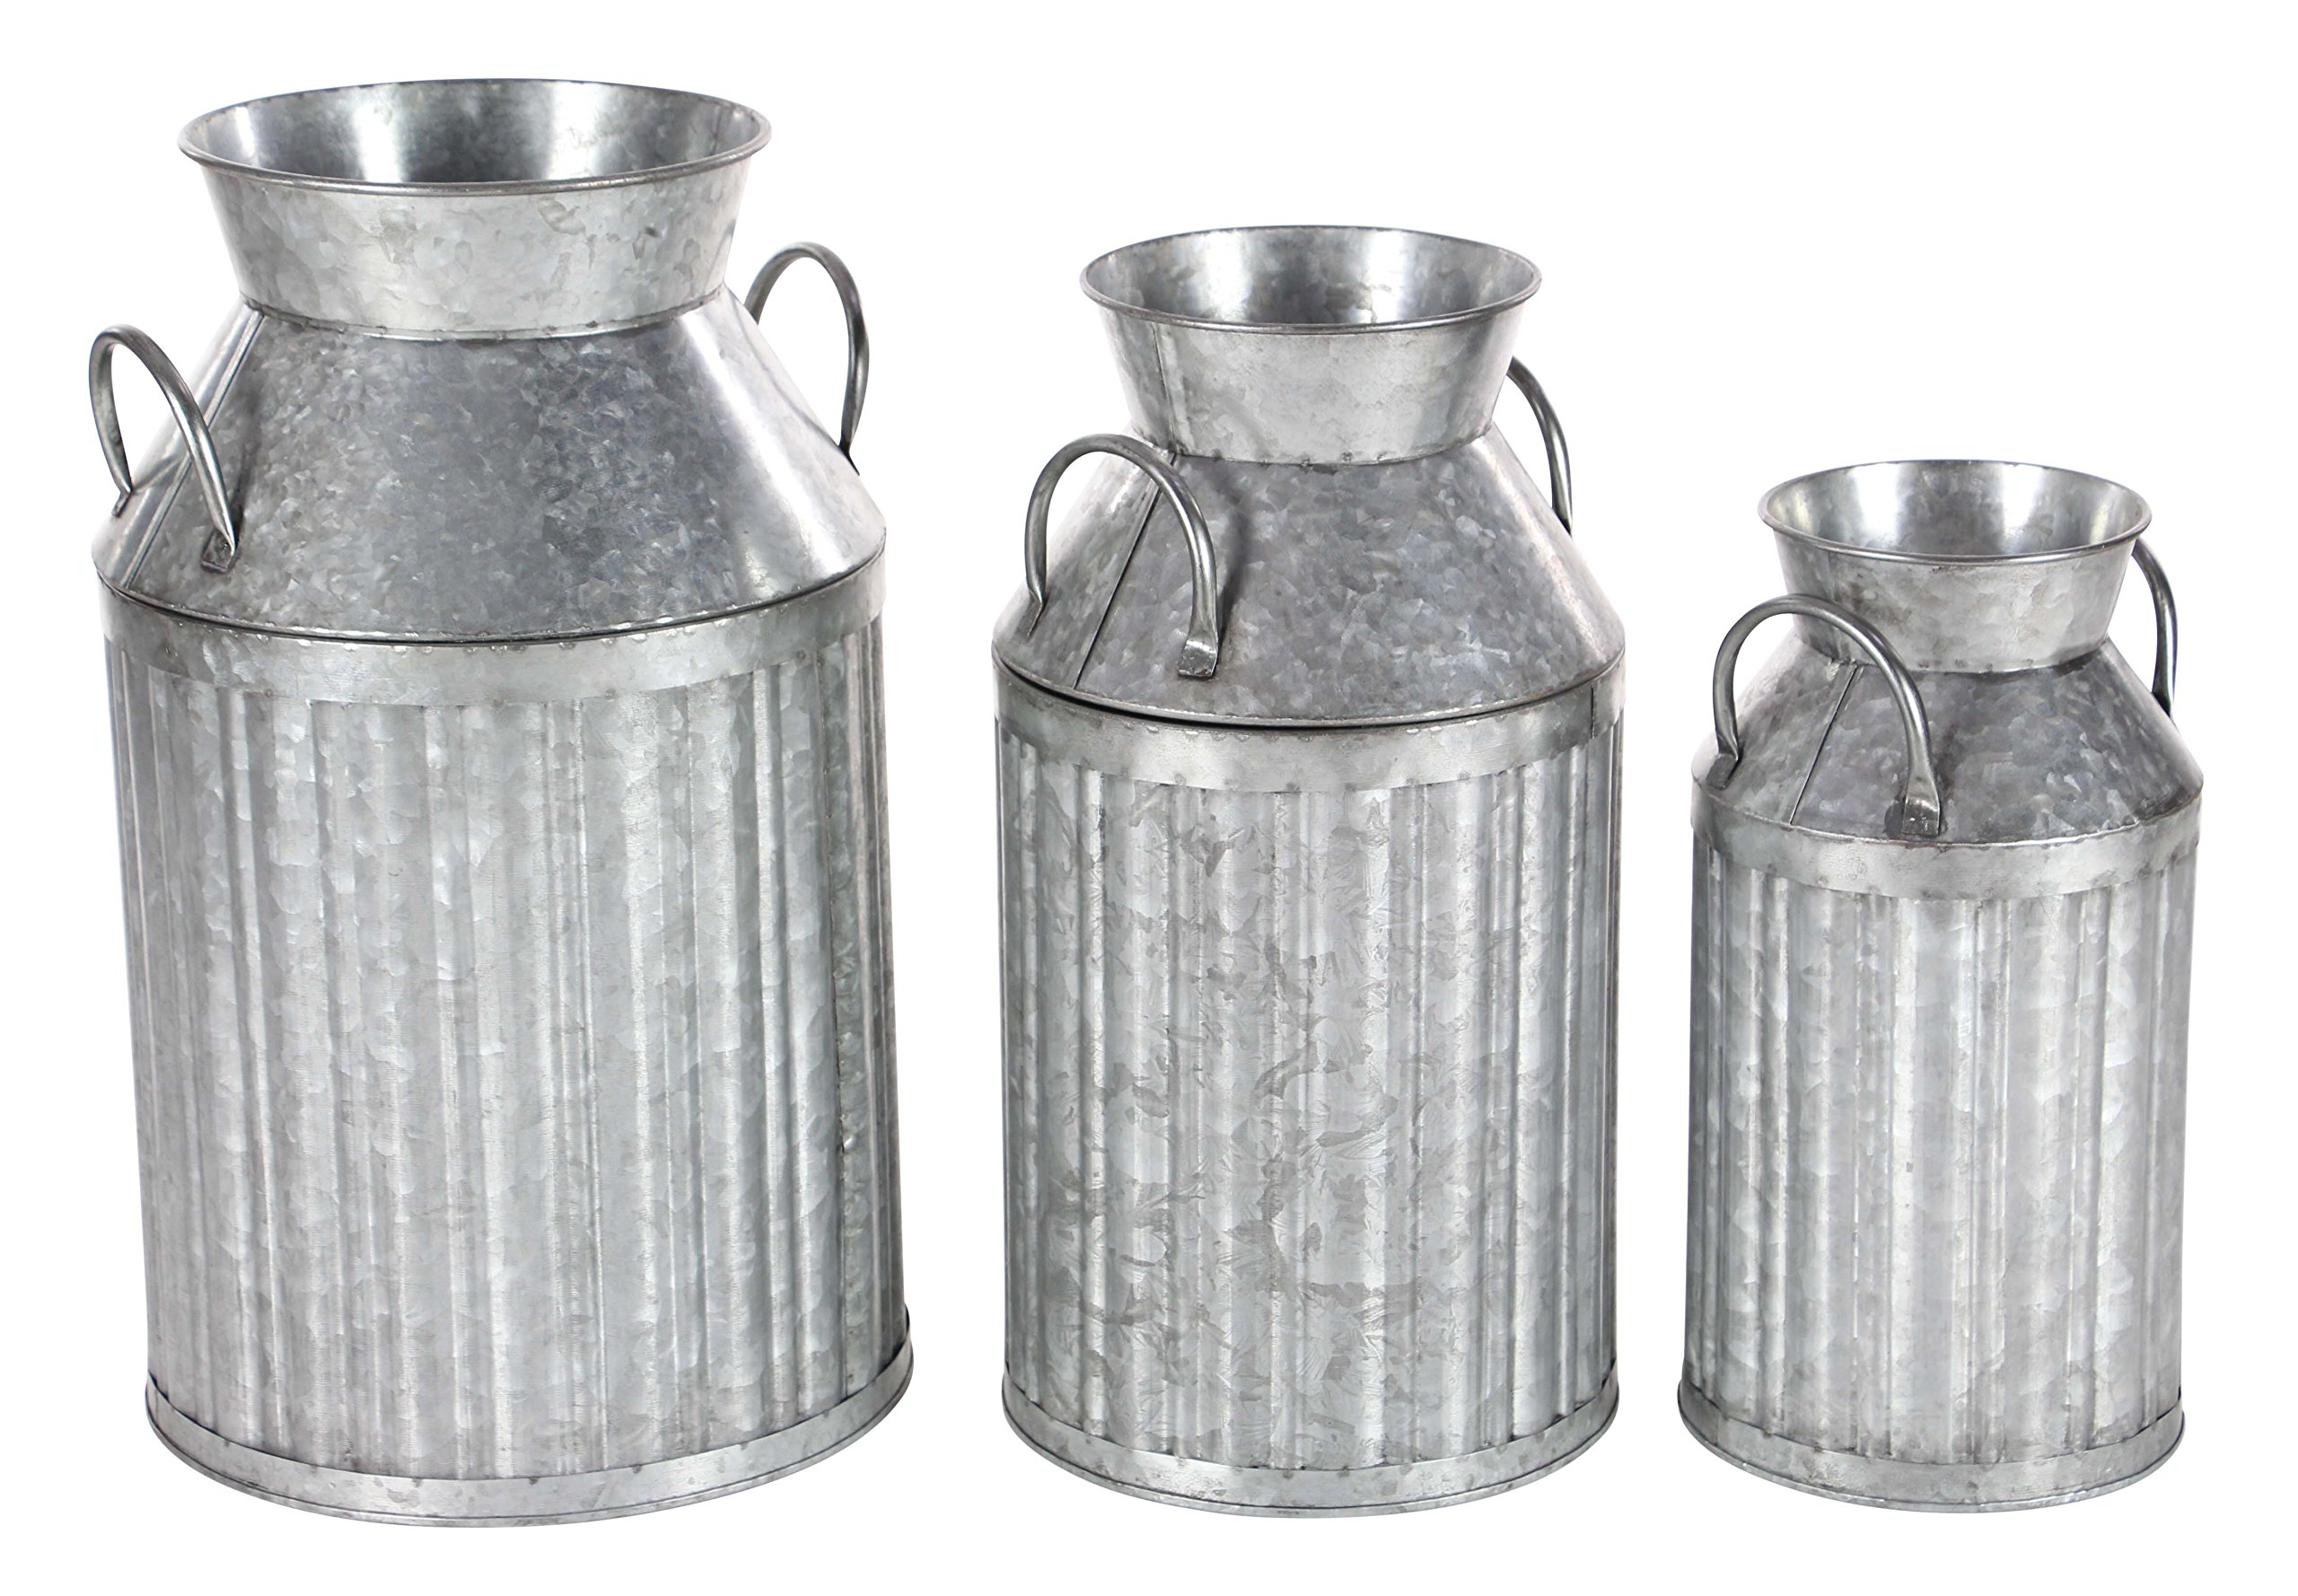 Deco 79 98145 Iron Milk Jugs (Set of 3), Gray by Deco 79